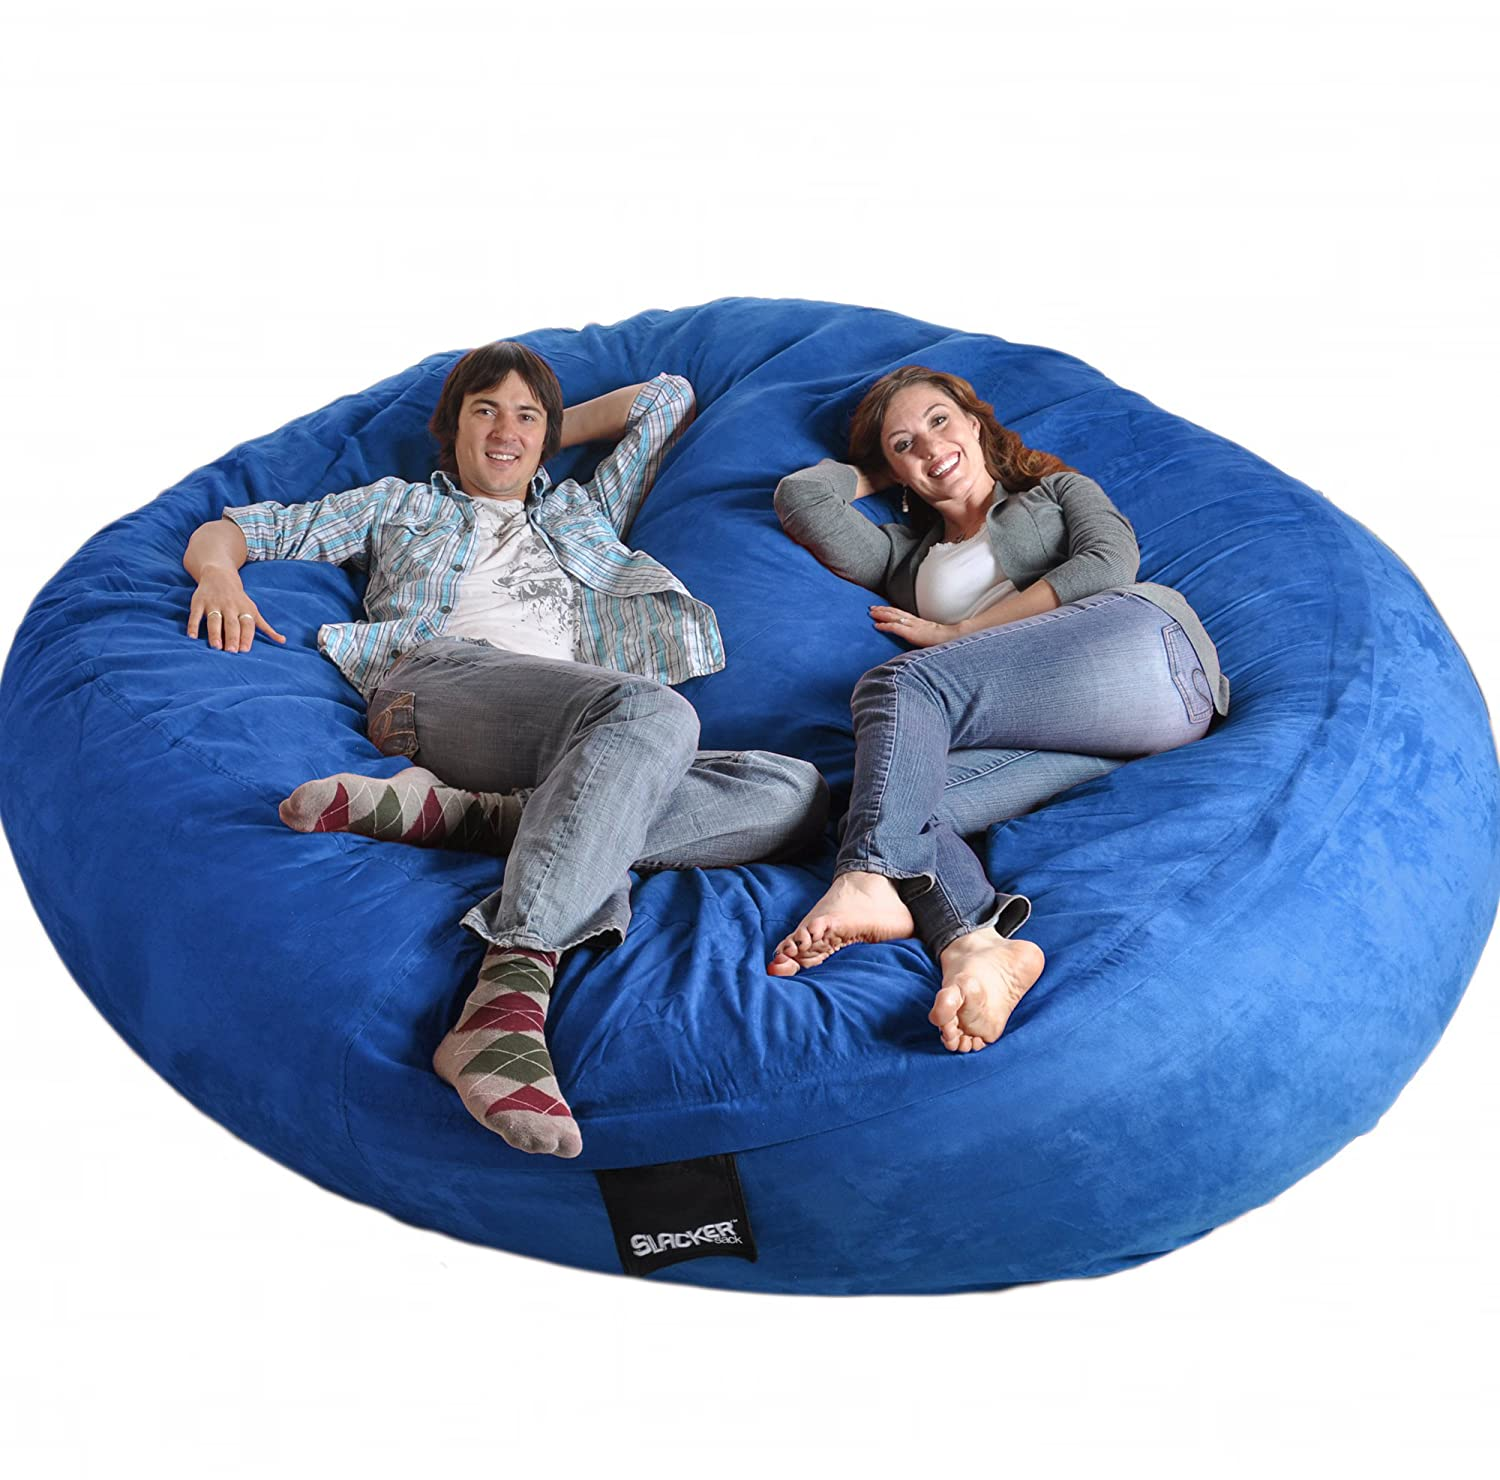 Amazon.com: 8 Feet Round Royal Blue XXXL Foam Bean Bag Chair Microfiber  Suede Giant SLACKER Sack Like LoveSac Biggest Beanbag: Kitchen U0026 Dining